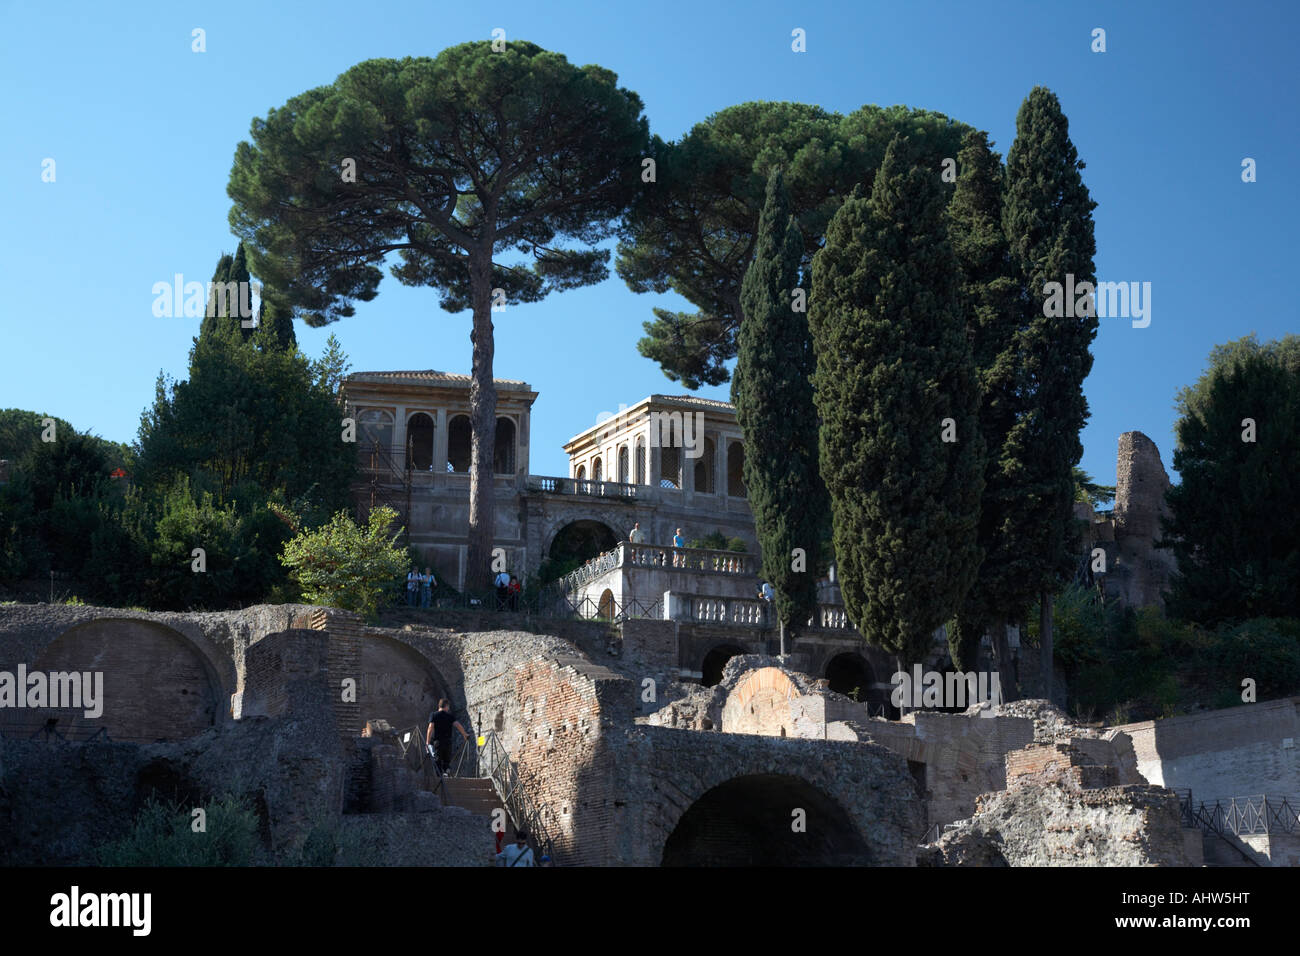 The Palatine hill and flavian palace as viewed from the Imperial Roman Forum Rome Lazio Italy - Stock Image